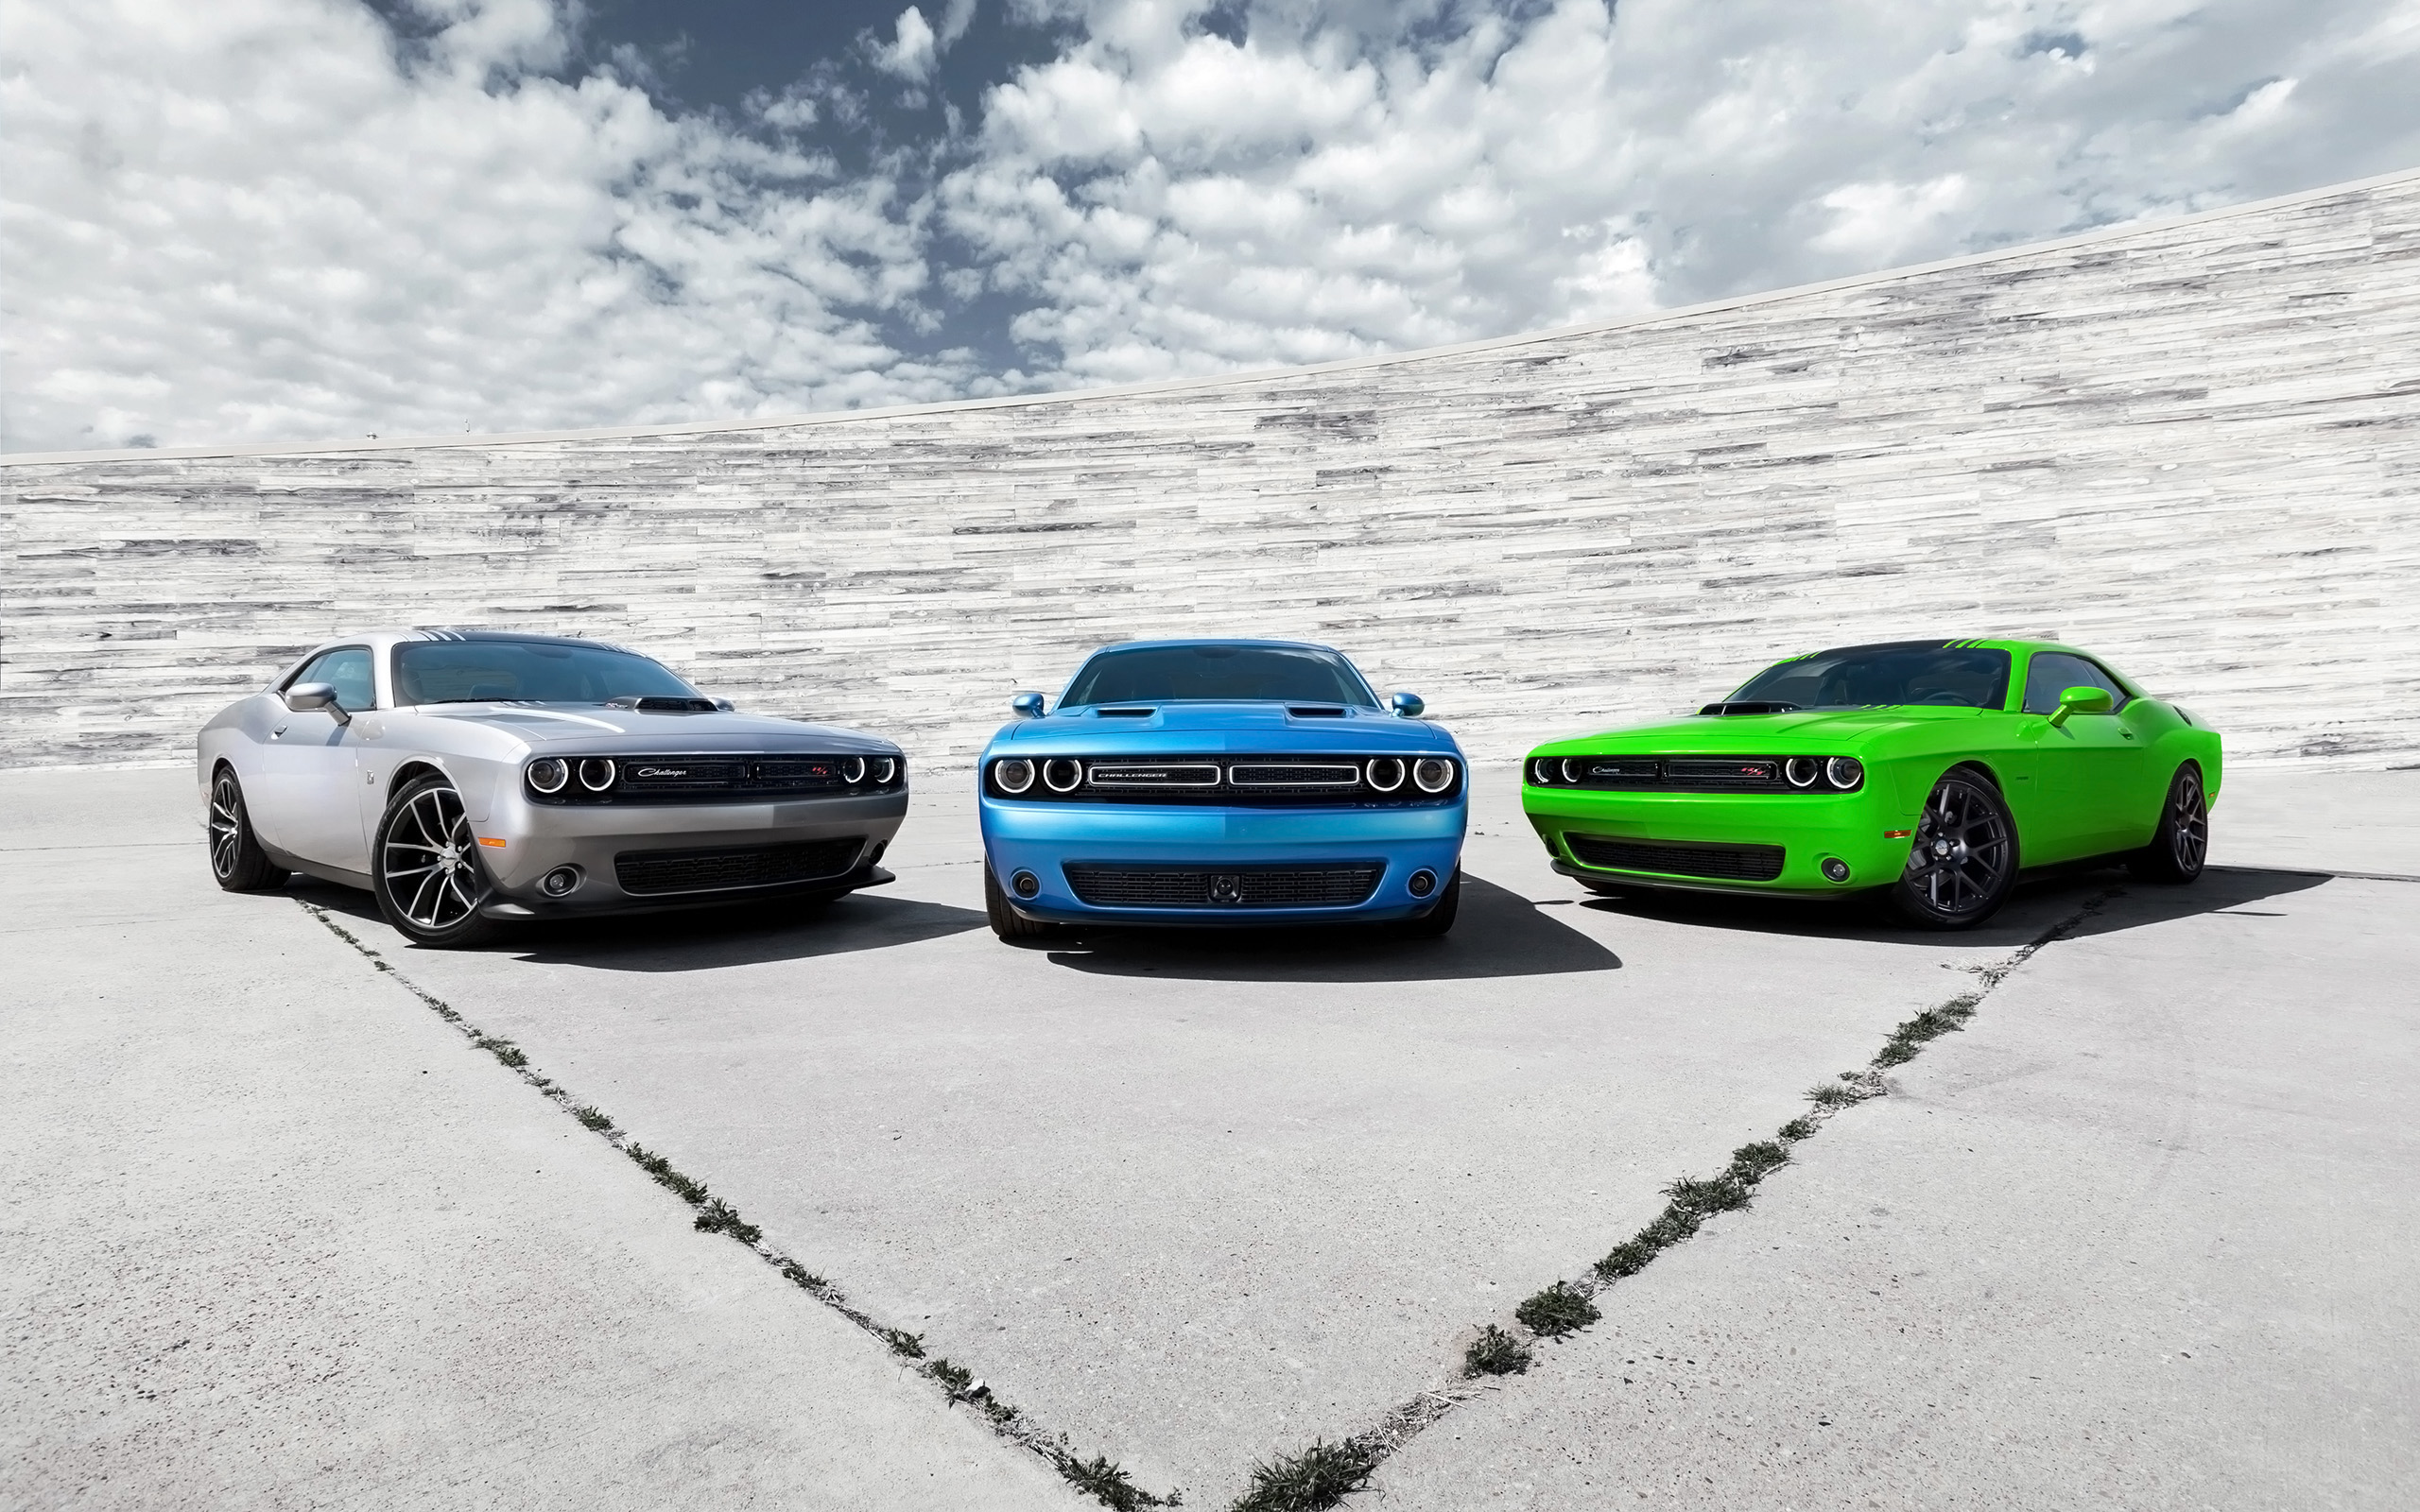 2015 Dodge Challenger Trio Wallpaper HD Car Wallpapers 2560x1600